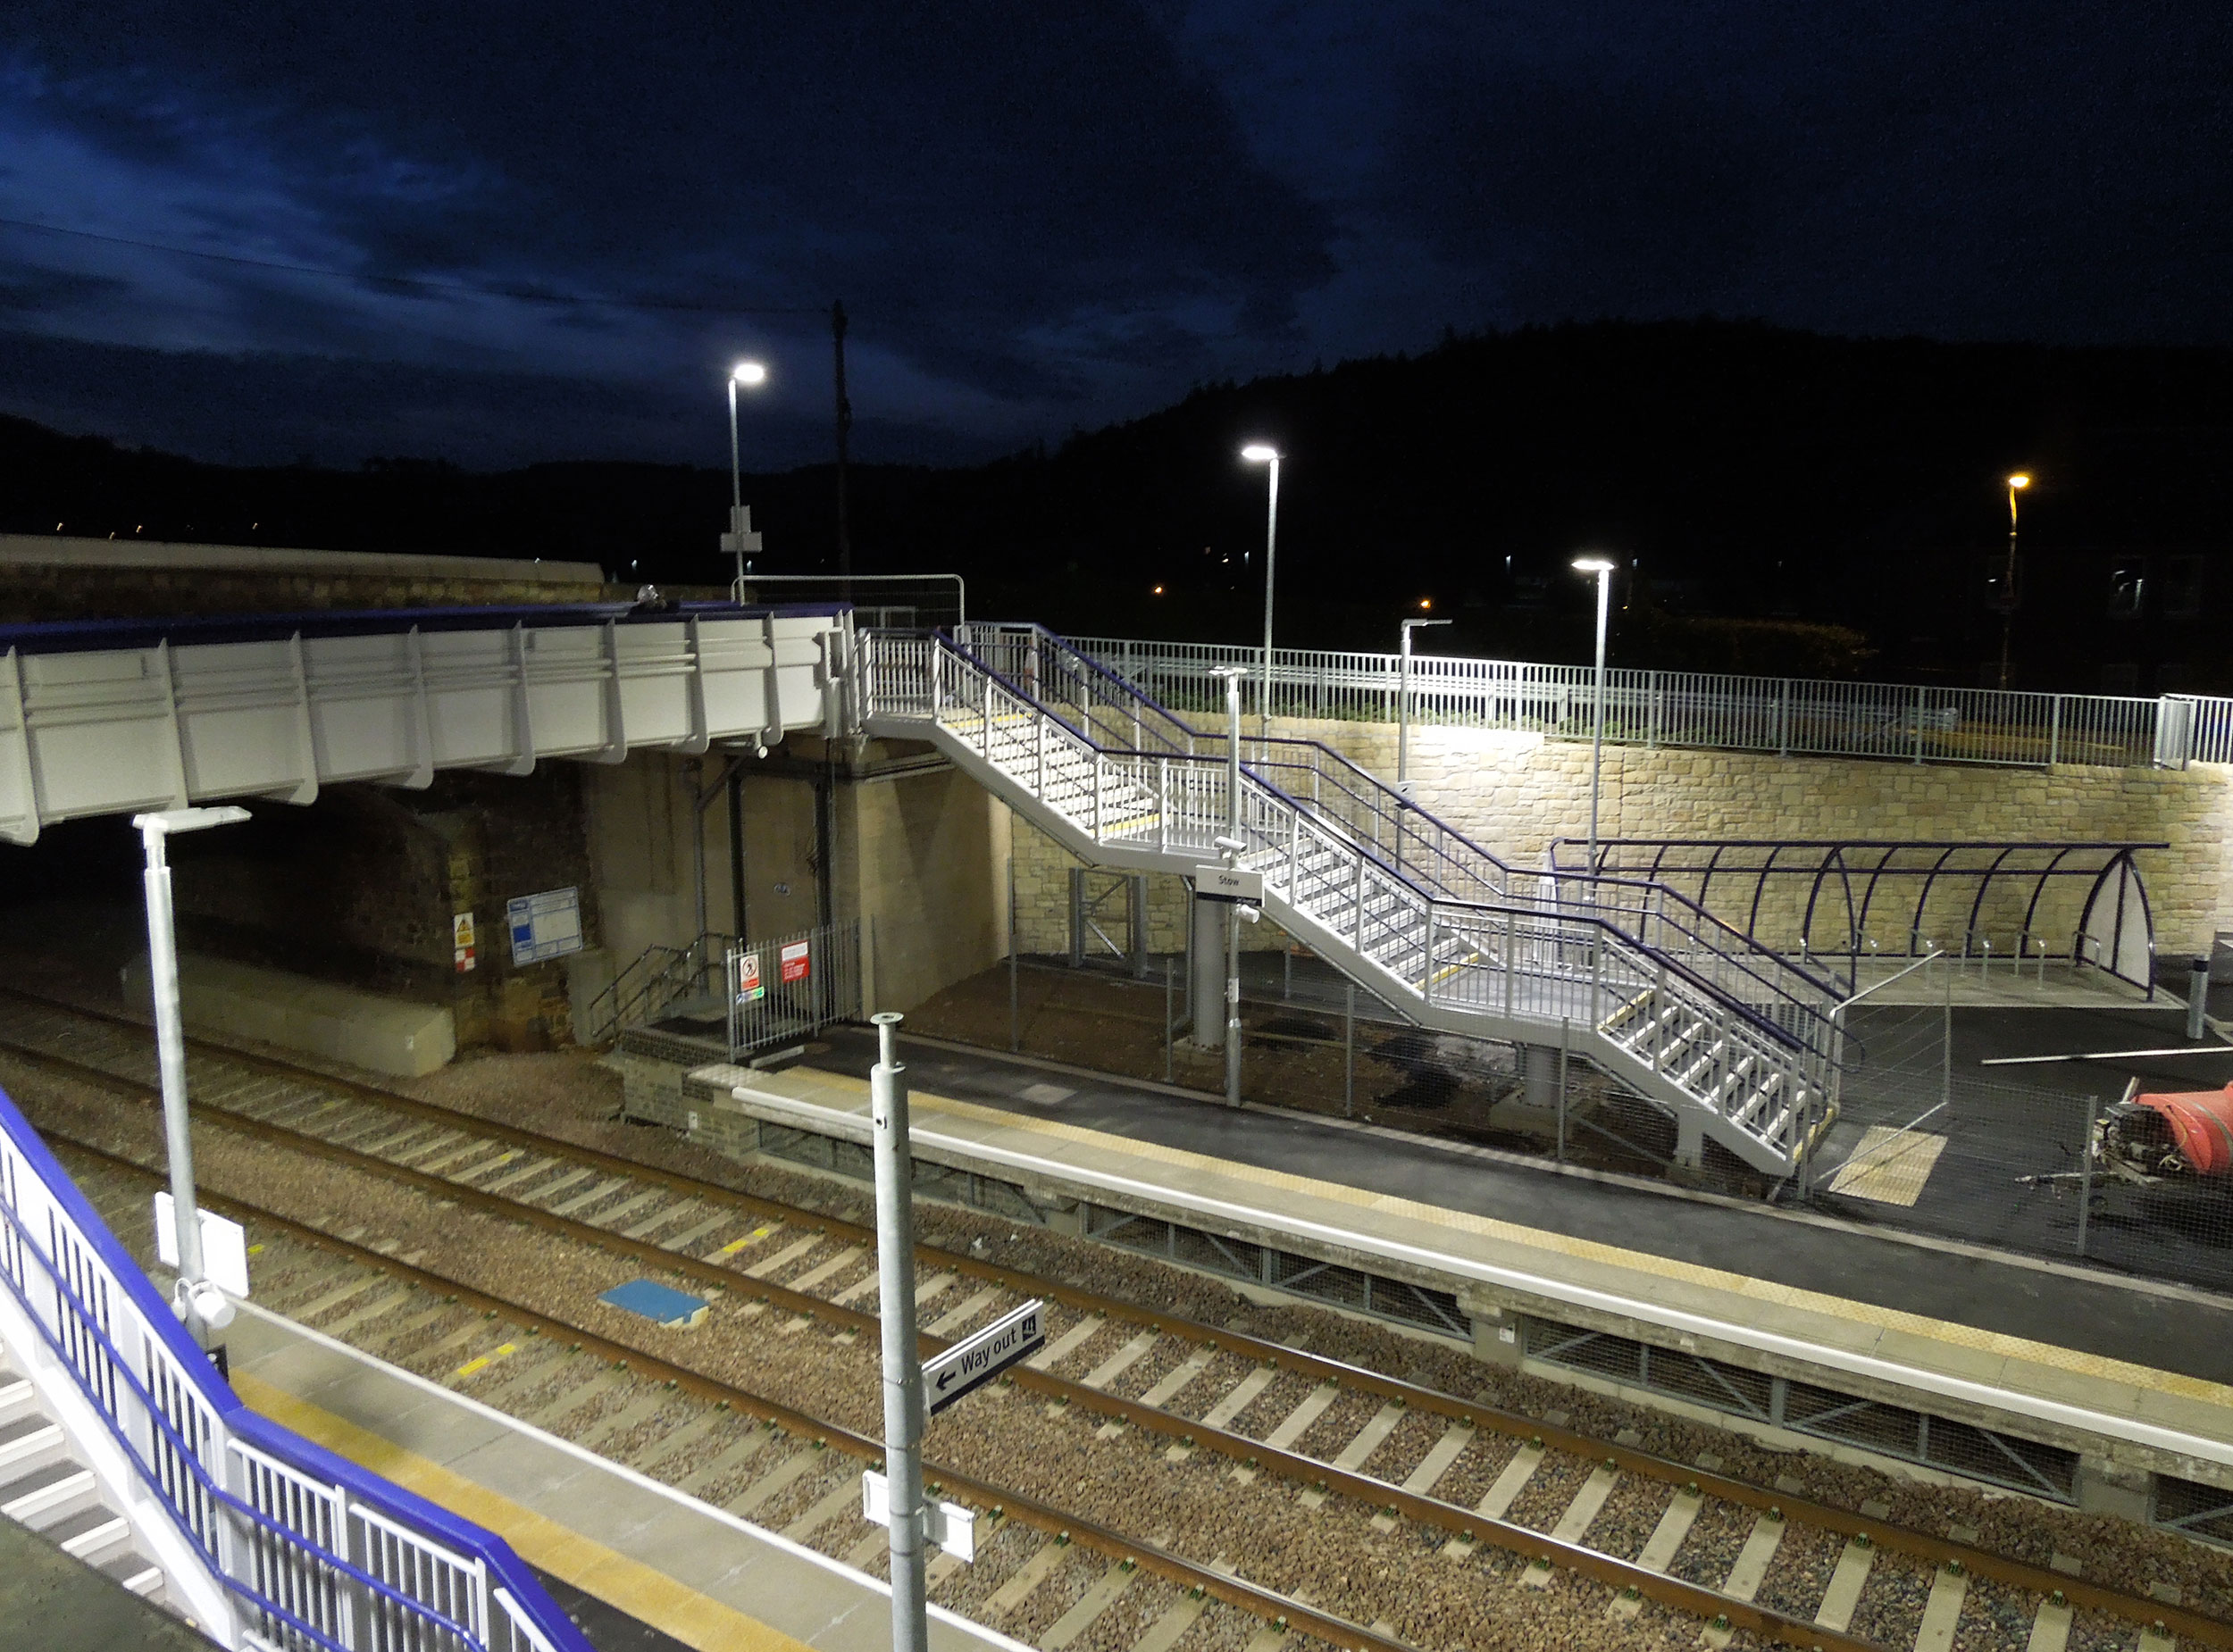 The high profile reinstatement of the Scottish Borders railway was the longest reopened domestic railway in the UK since the 1969 Beechings closures, and created seven new stations.